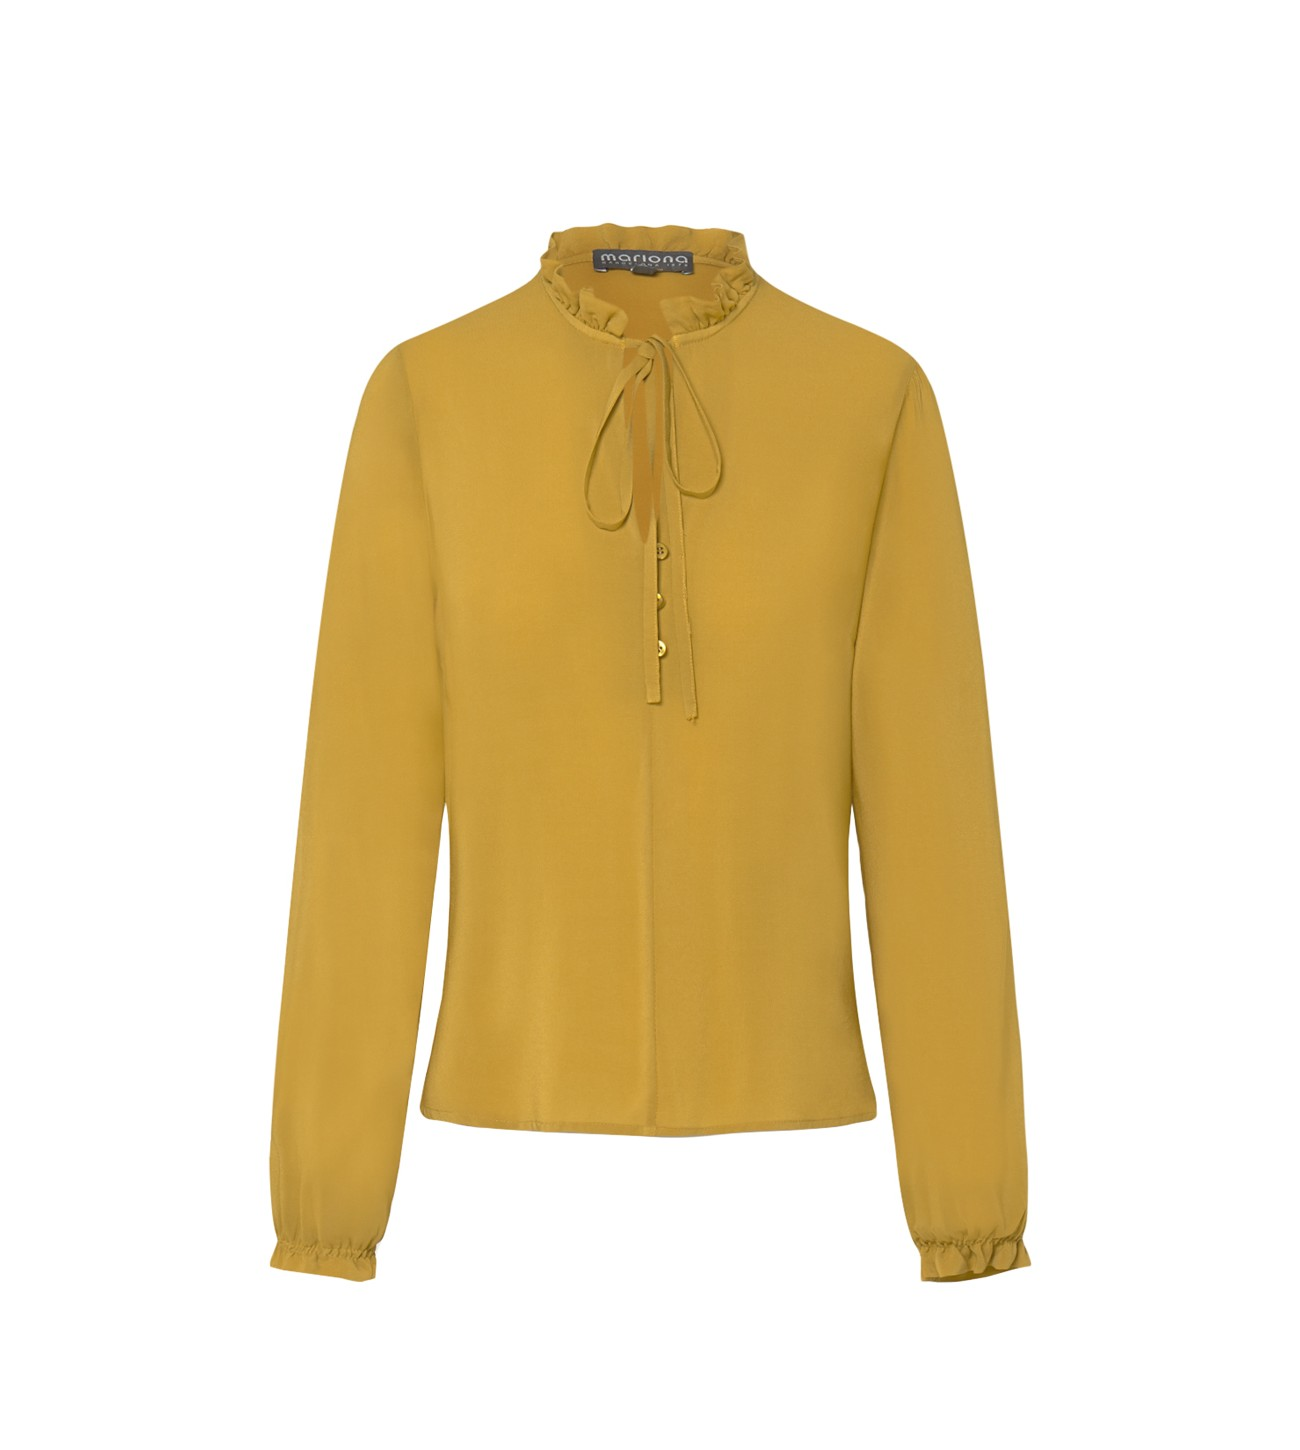 MARIONA__MARIONA_FASHION_CLOTHING_WOMAN_SHOP_ONLINE_5120H